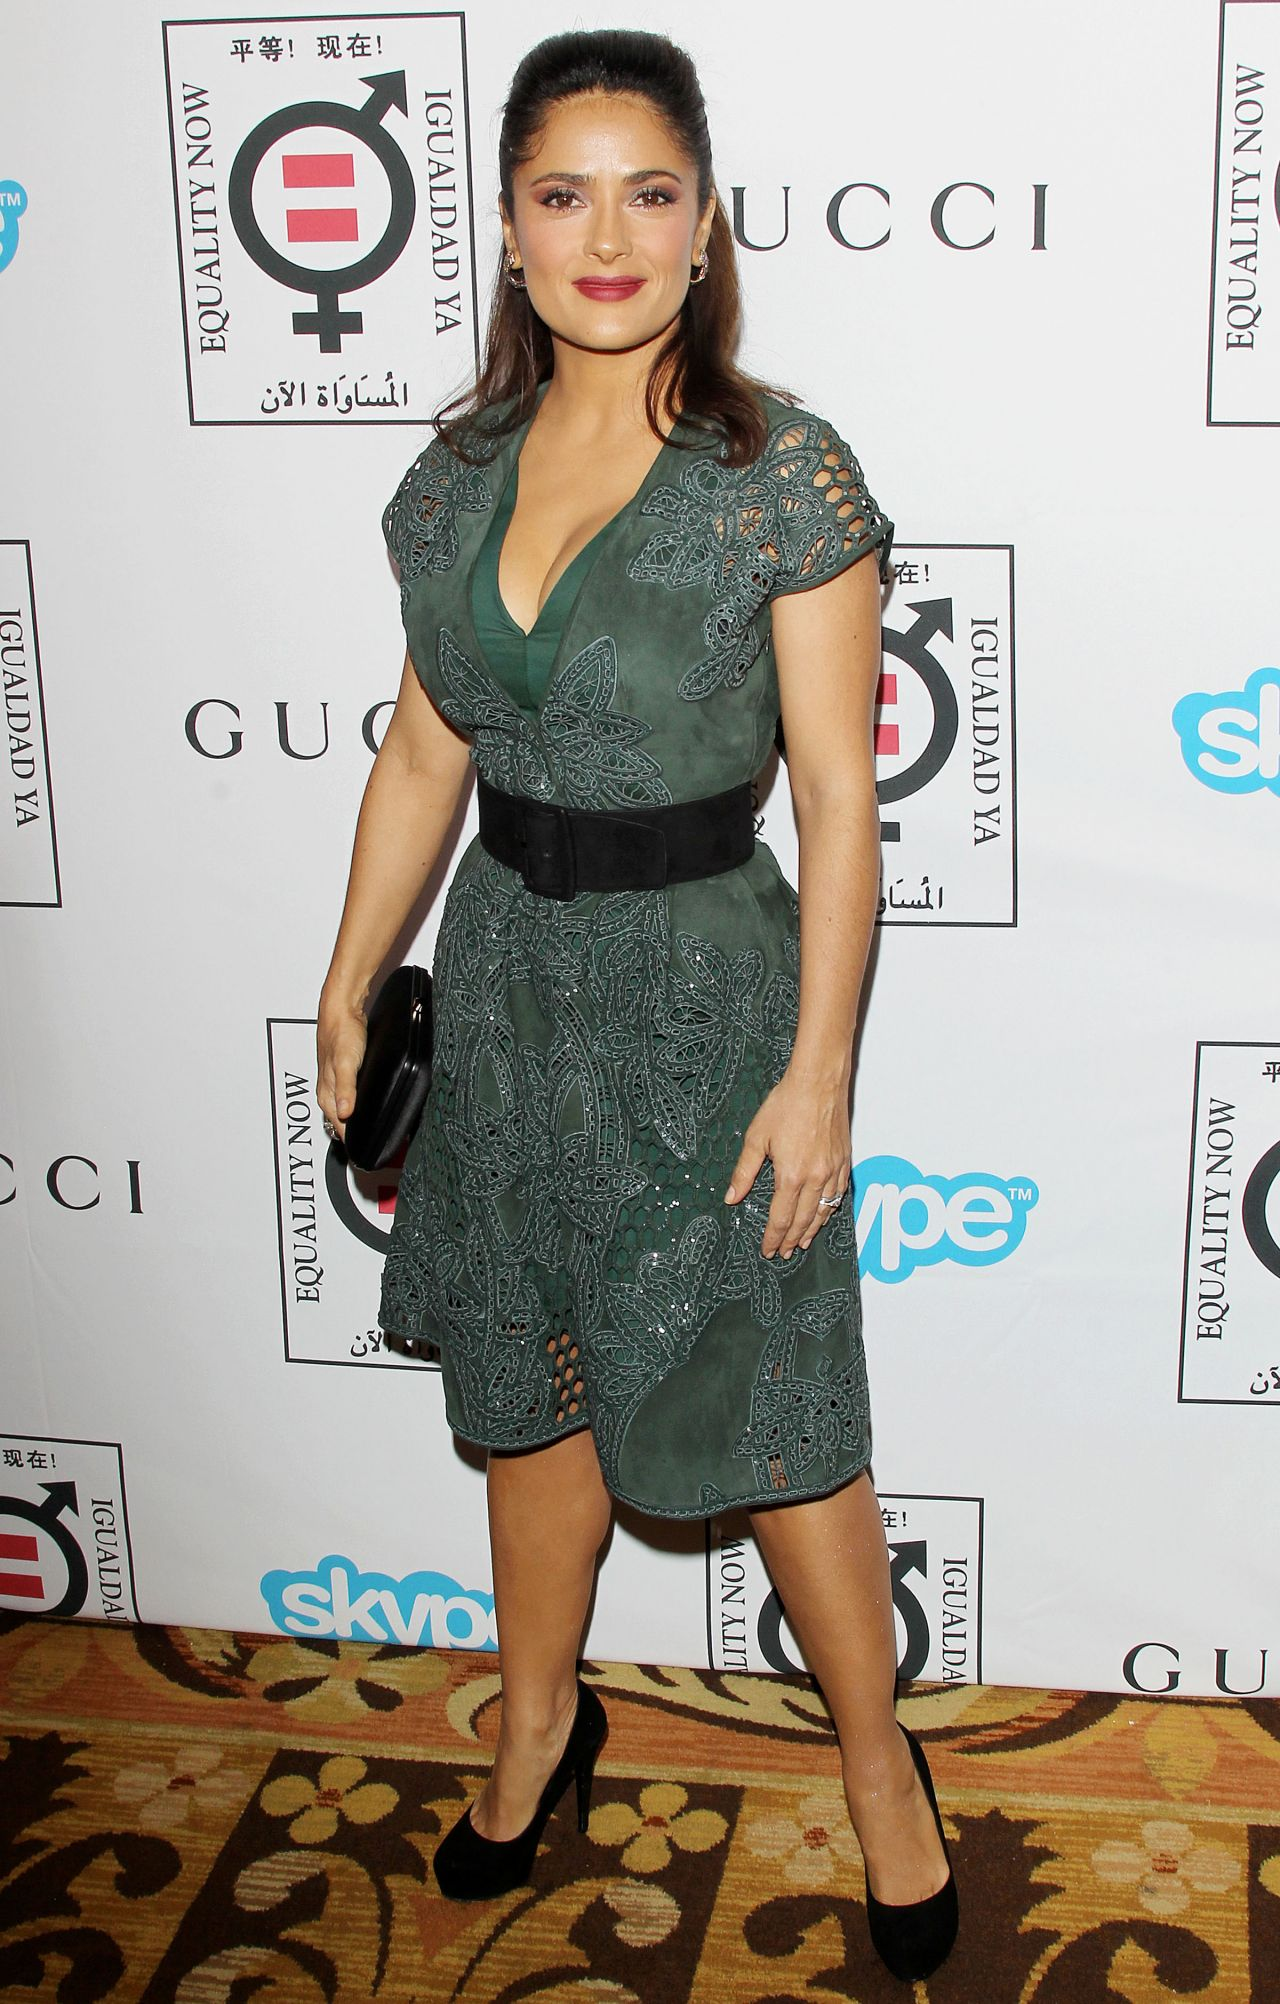 Salma Hayek - Equality Nows Make Equality Reality Event -1535